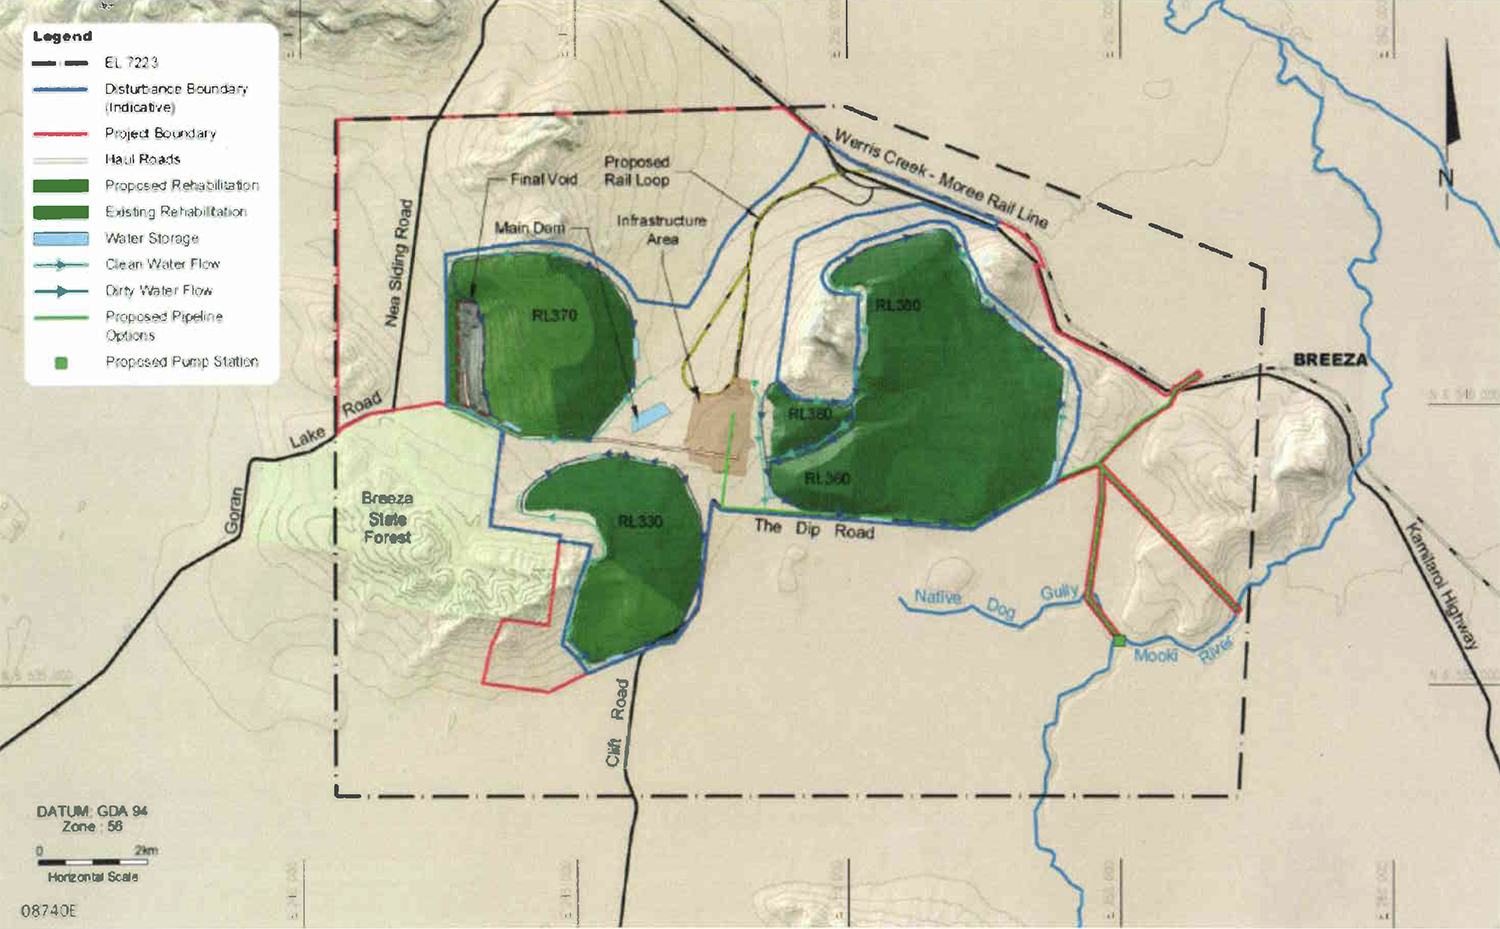 Figure showing 30-year mine plan with proposed 'final void'. Image credit: environment.gov.au